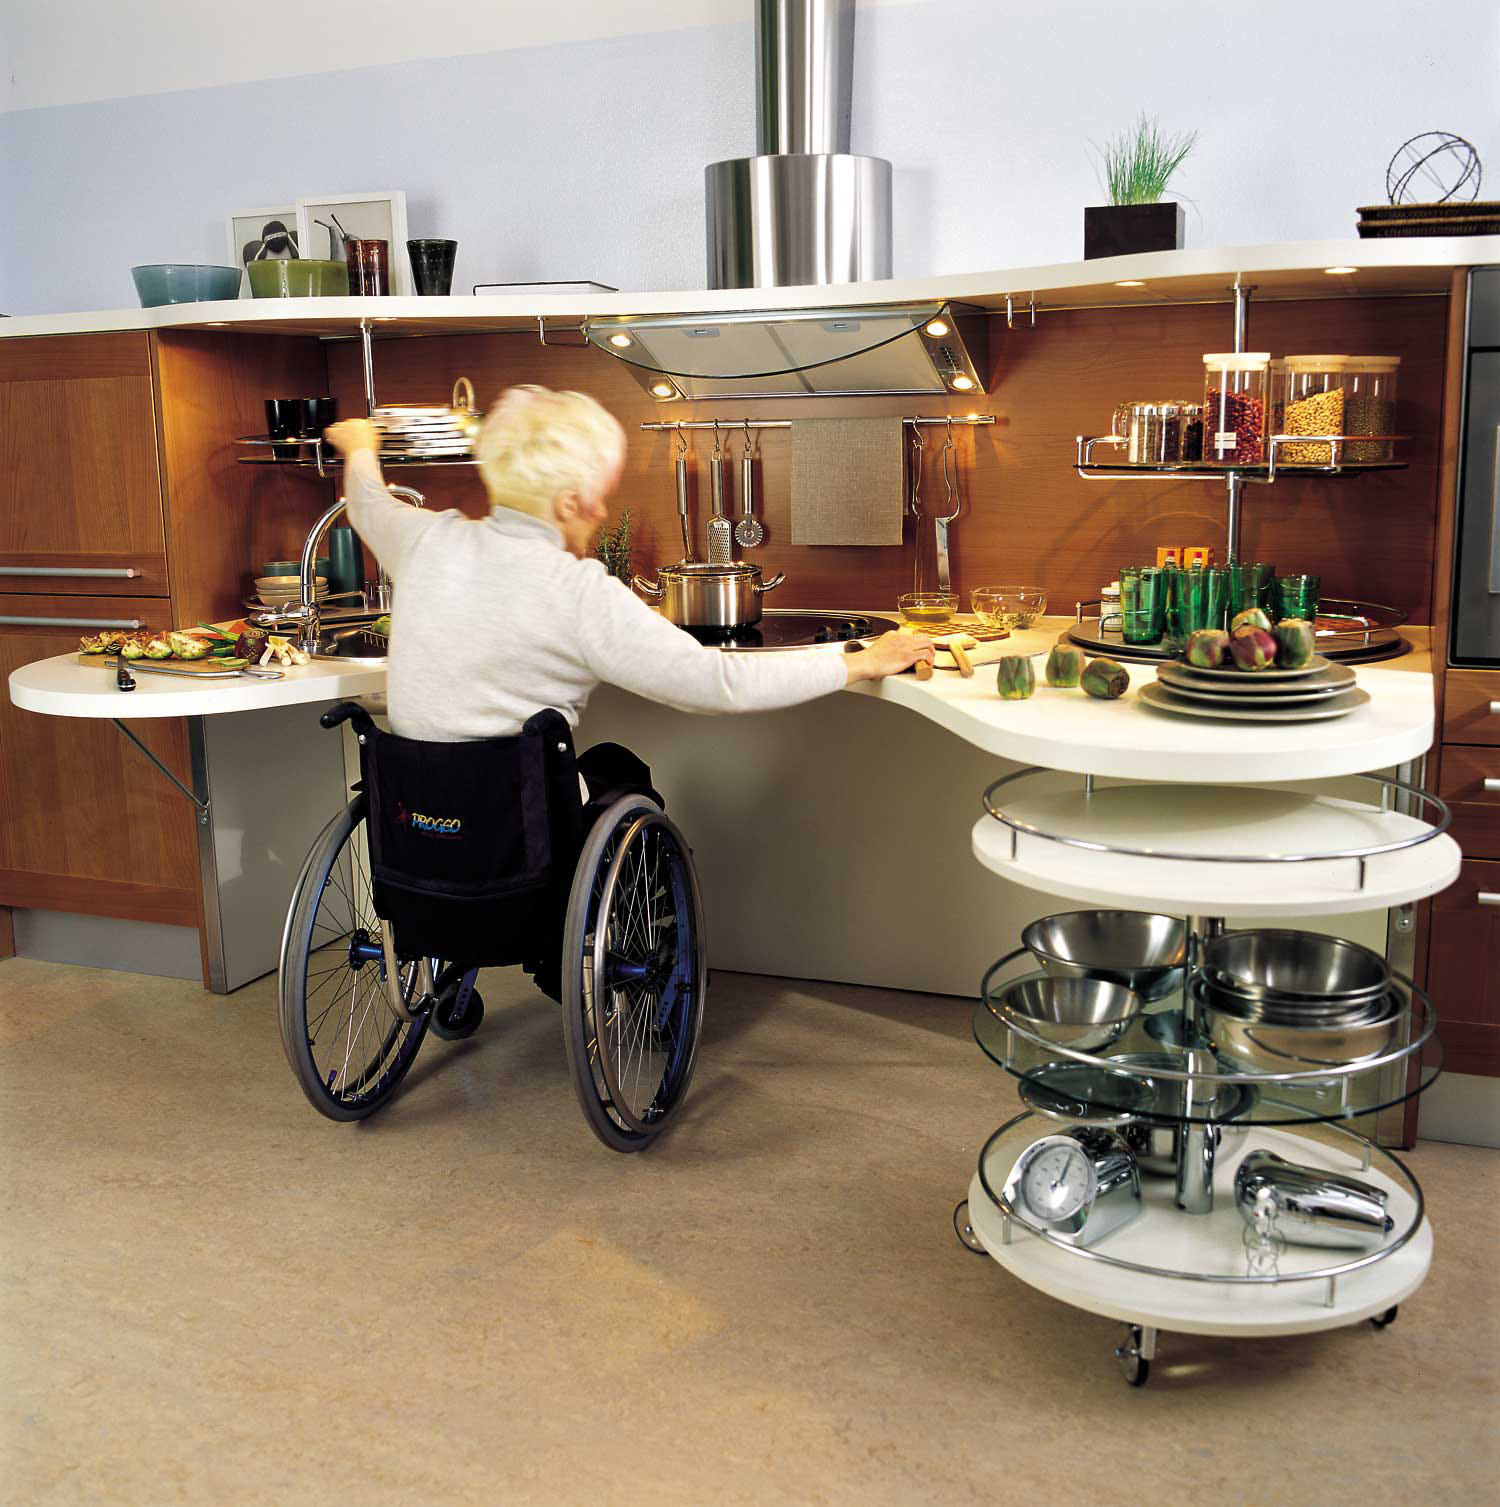 Captivating Ergonomic Italian Kitchen Design Suitable For Wheelchair Users